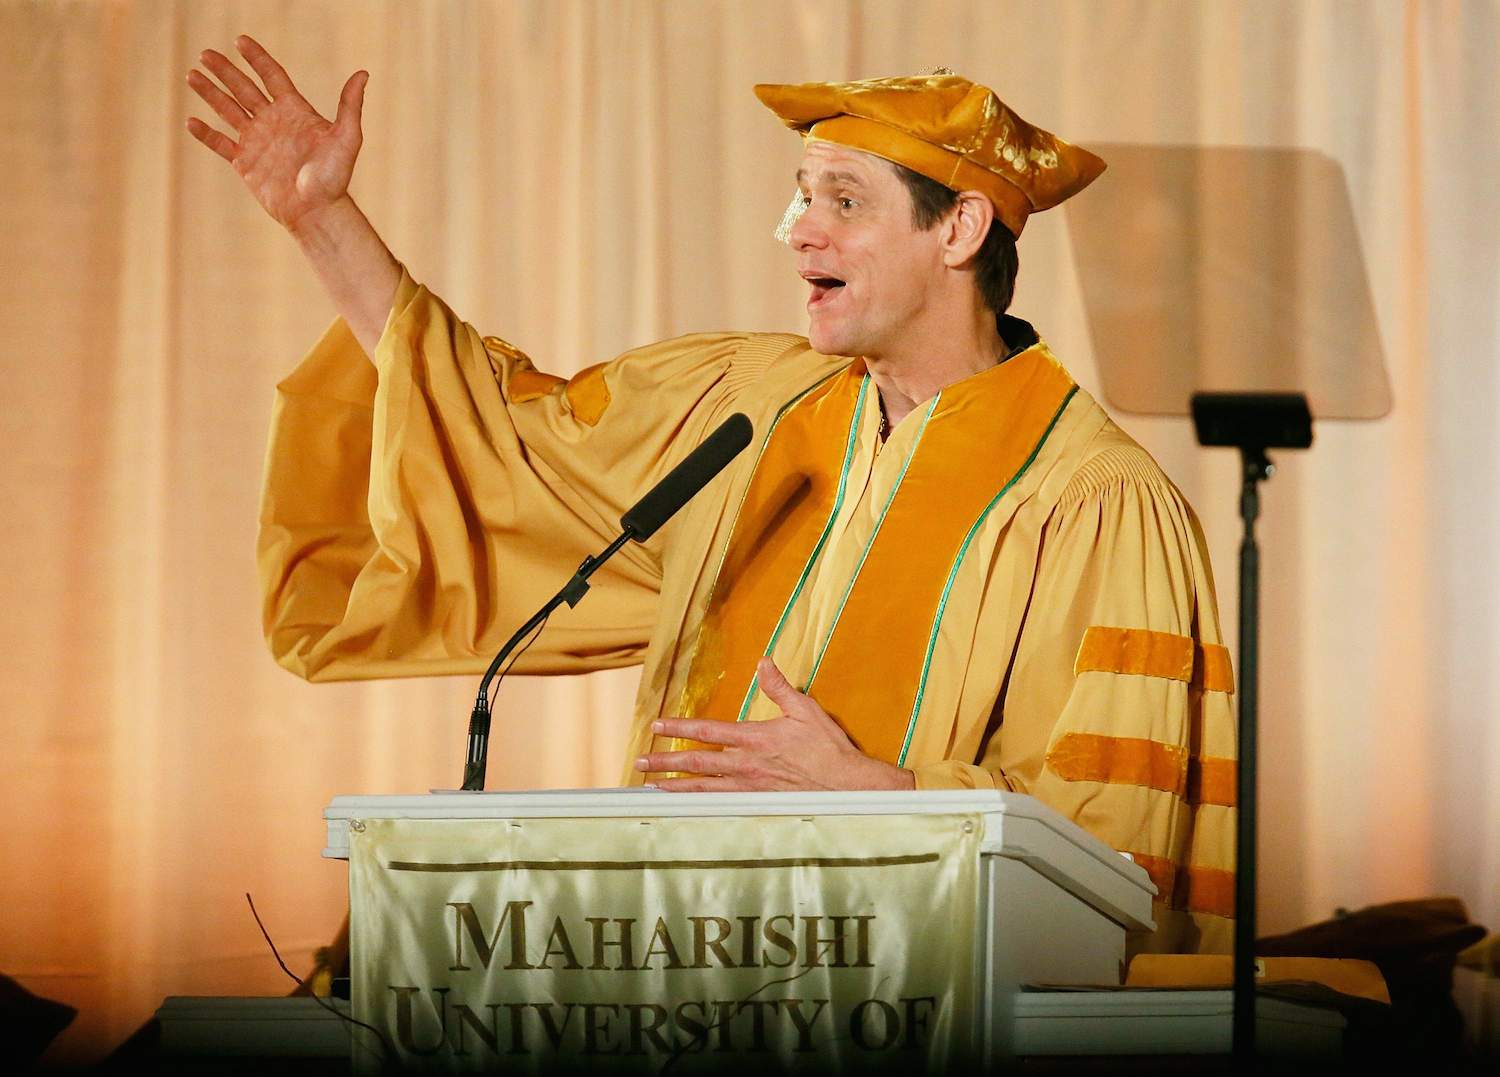 """Episode 87: """"You Will Only Ever Have Two Choices"""" - This week we're looking at Jim Carrey's speech to the 2014 graduating class of the Maharishi University of Management. In this address, he discusses his belief that our choices are generally based in either fear or love. He encourages the graduates to have faith in themselves, to follow their passions in spite of negativity and doubt. He also promotes feelings of connection and urges them to express both their desires and skills without hesitation."""